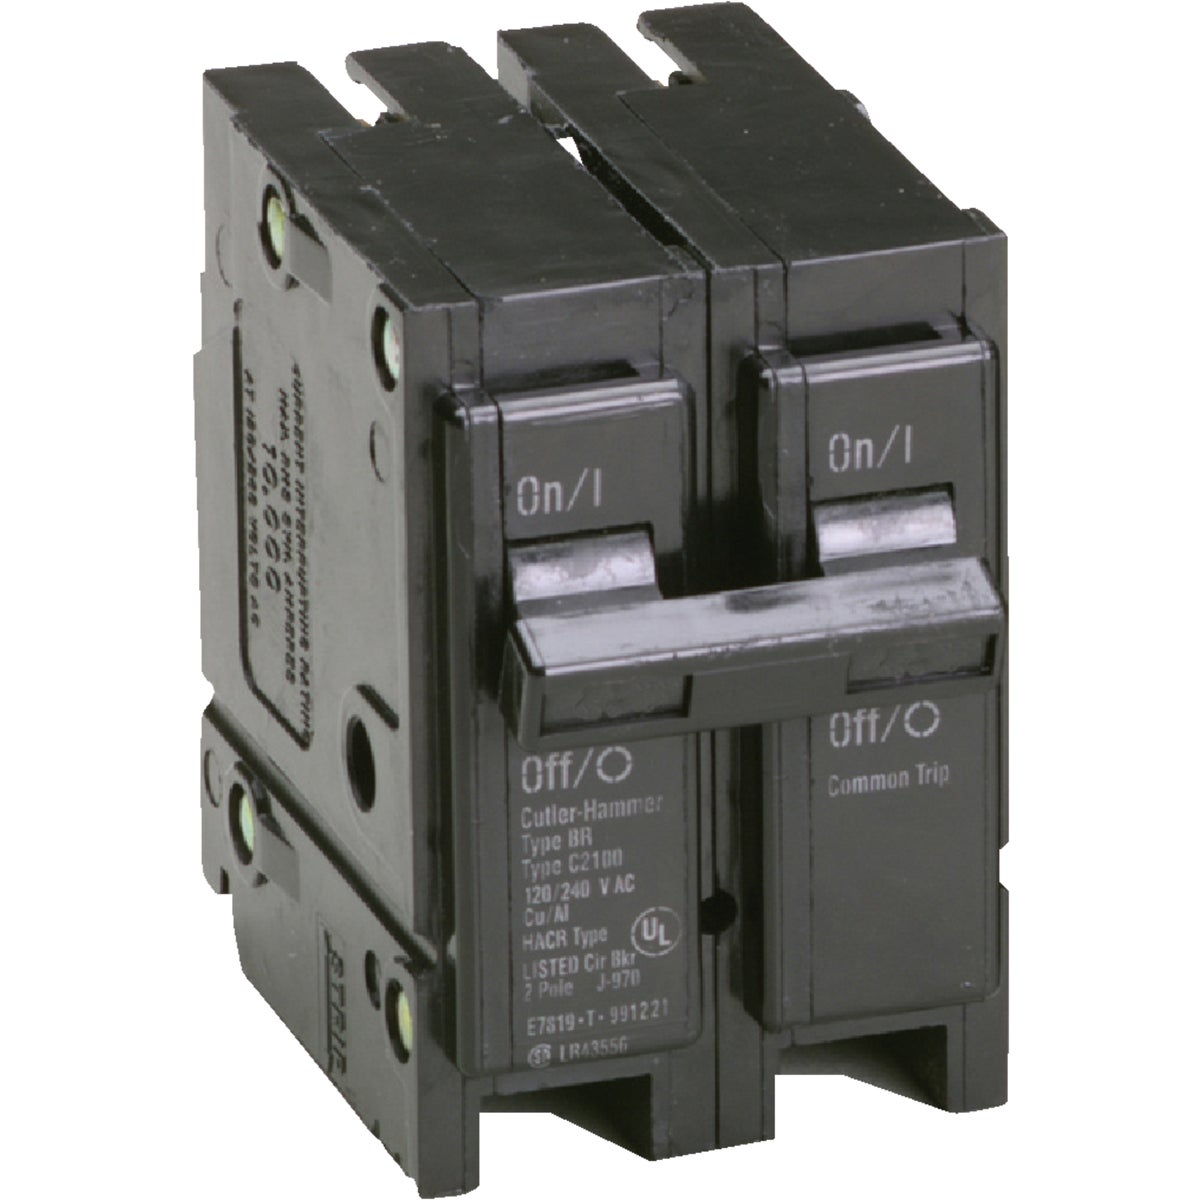 70A 2P CIRCUIT BREAKER - BR270 by Eaton Corporation